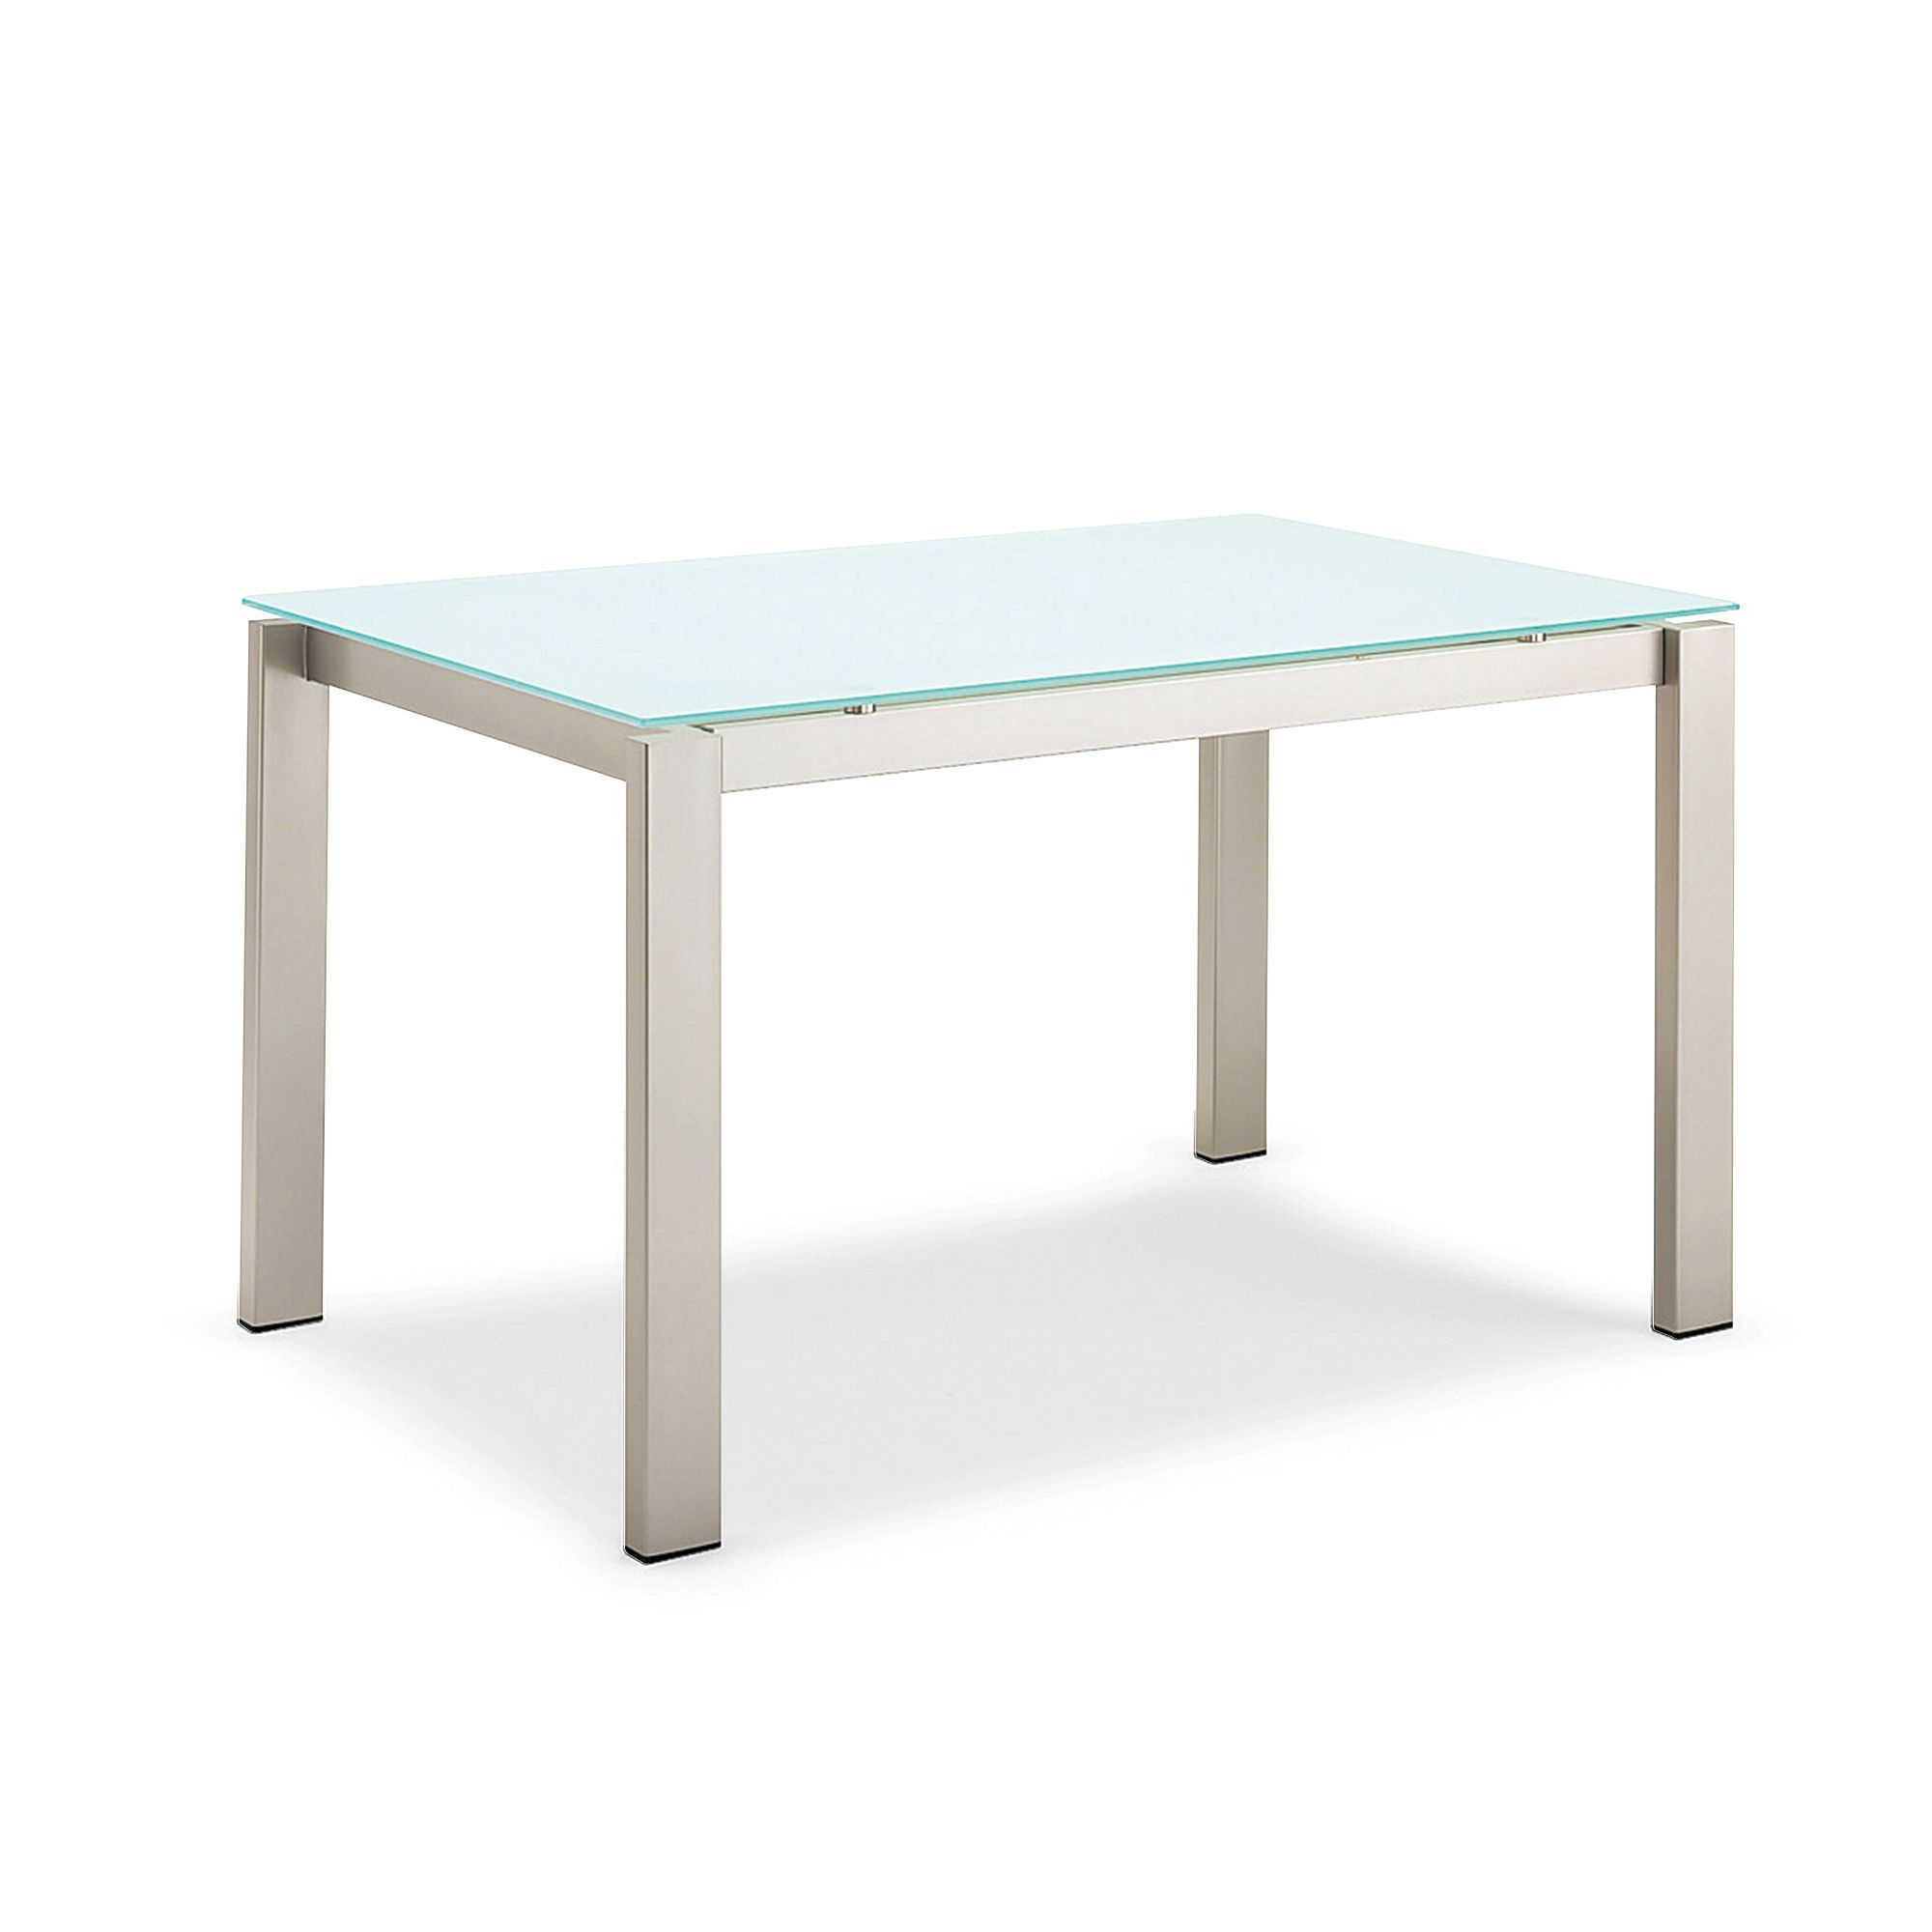 Calligaris Extendable Baron Table 130 At Smartfurniture Com